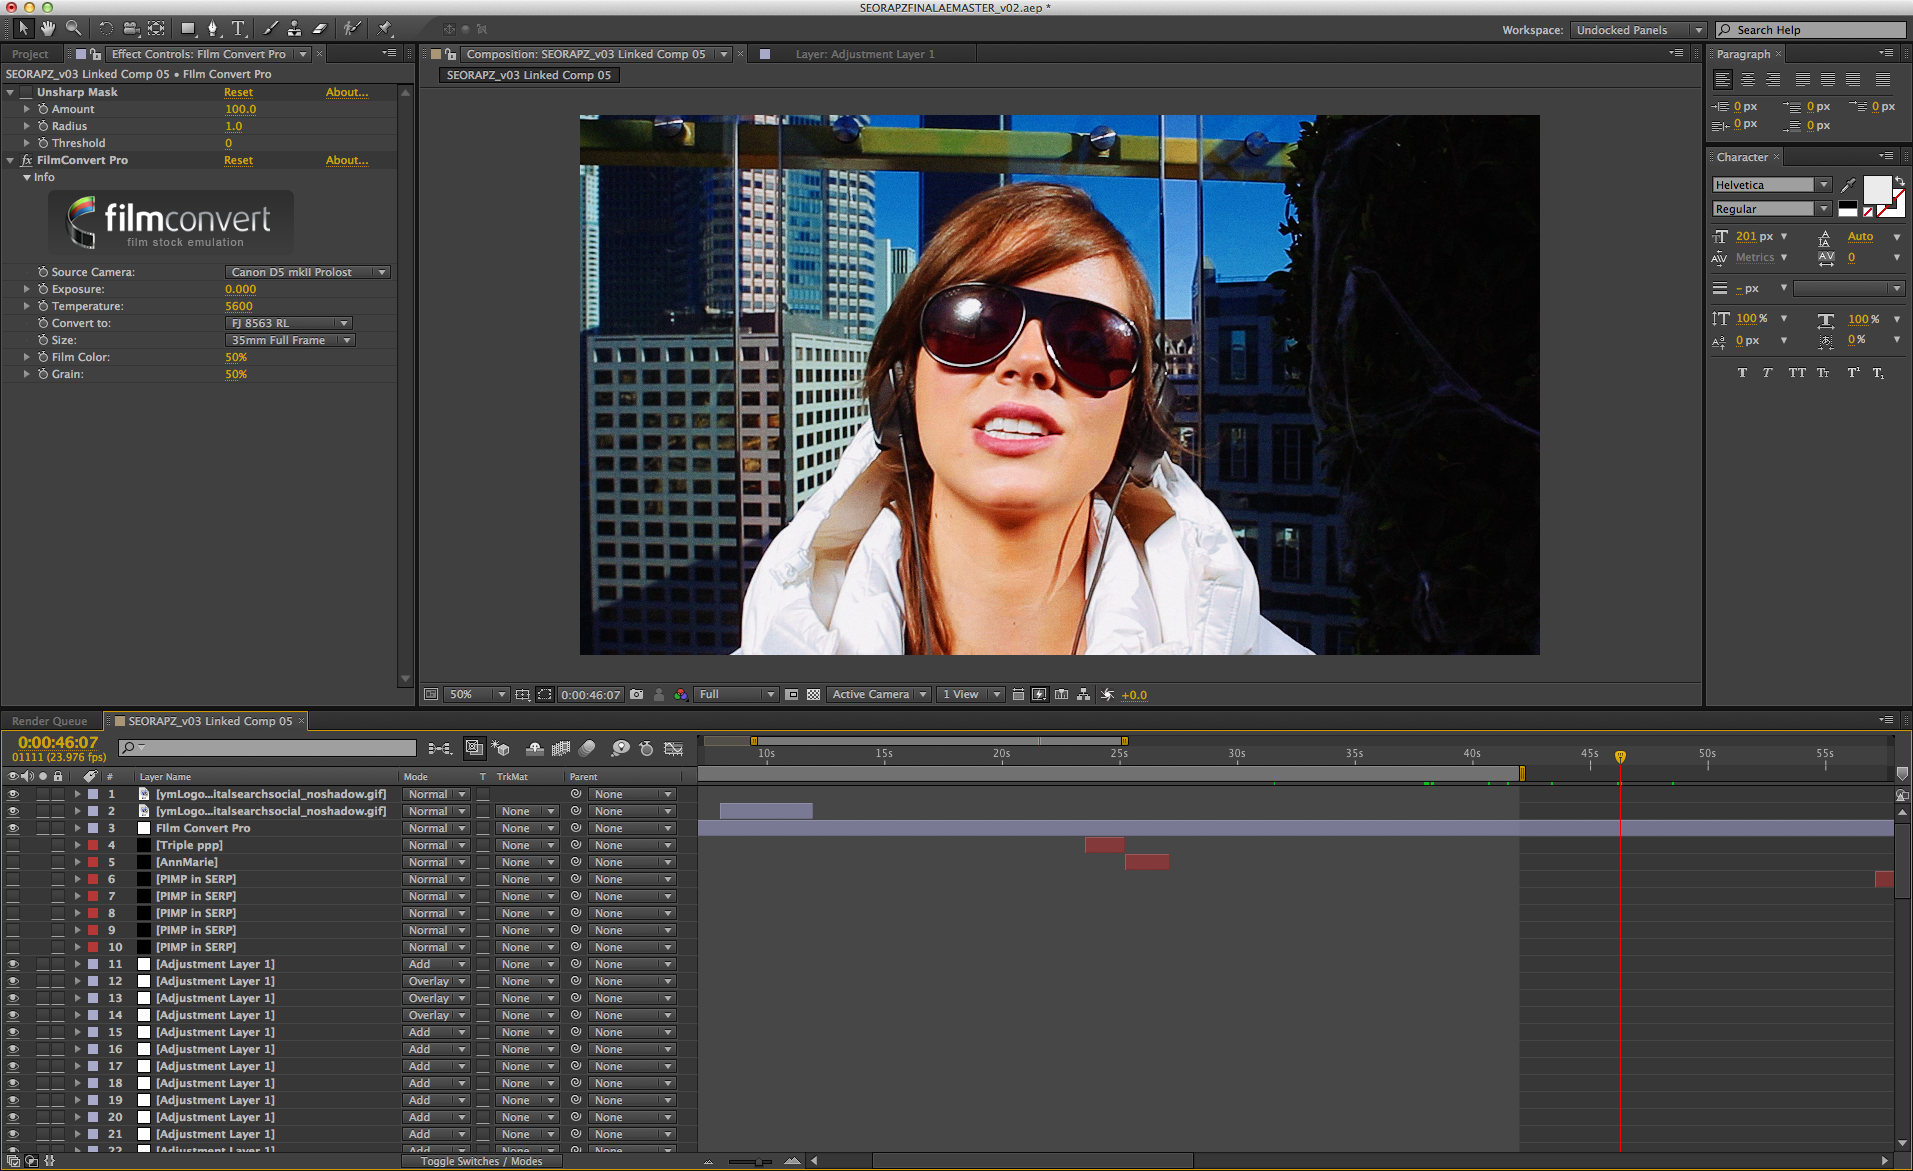 Adobe CS6: 5 Editing Tips for Music Videos | Vashi Visuals